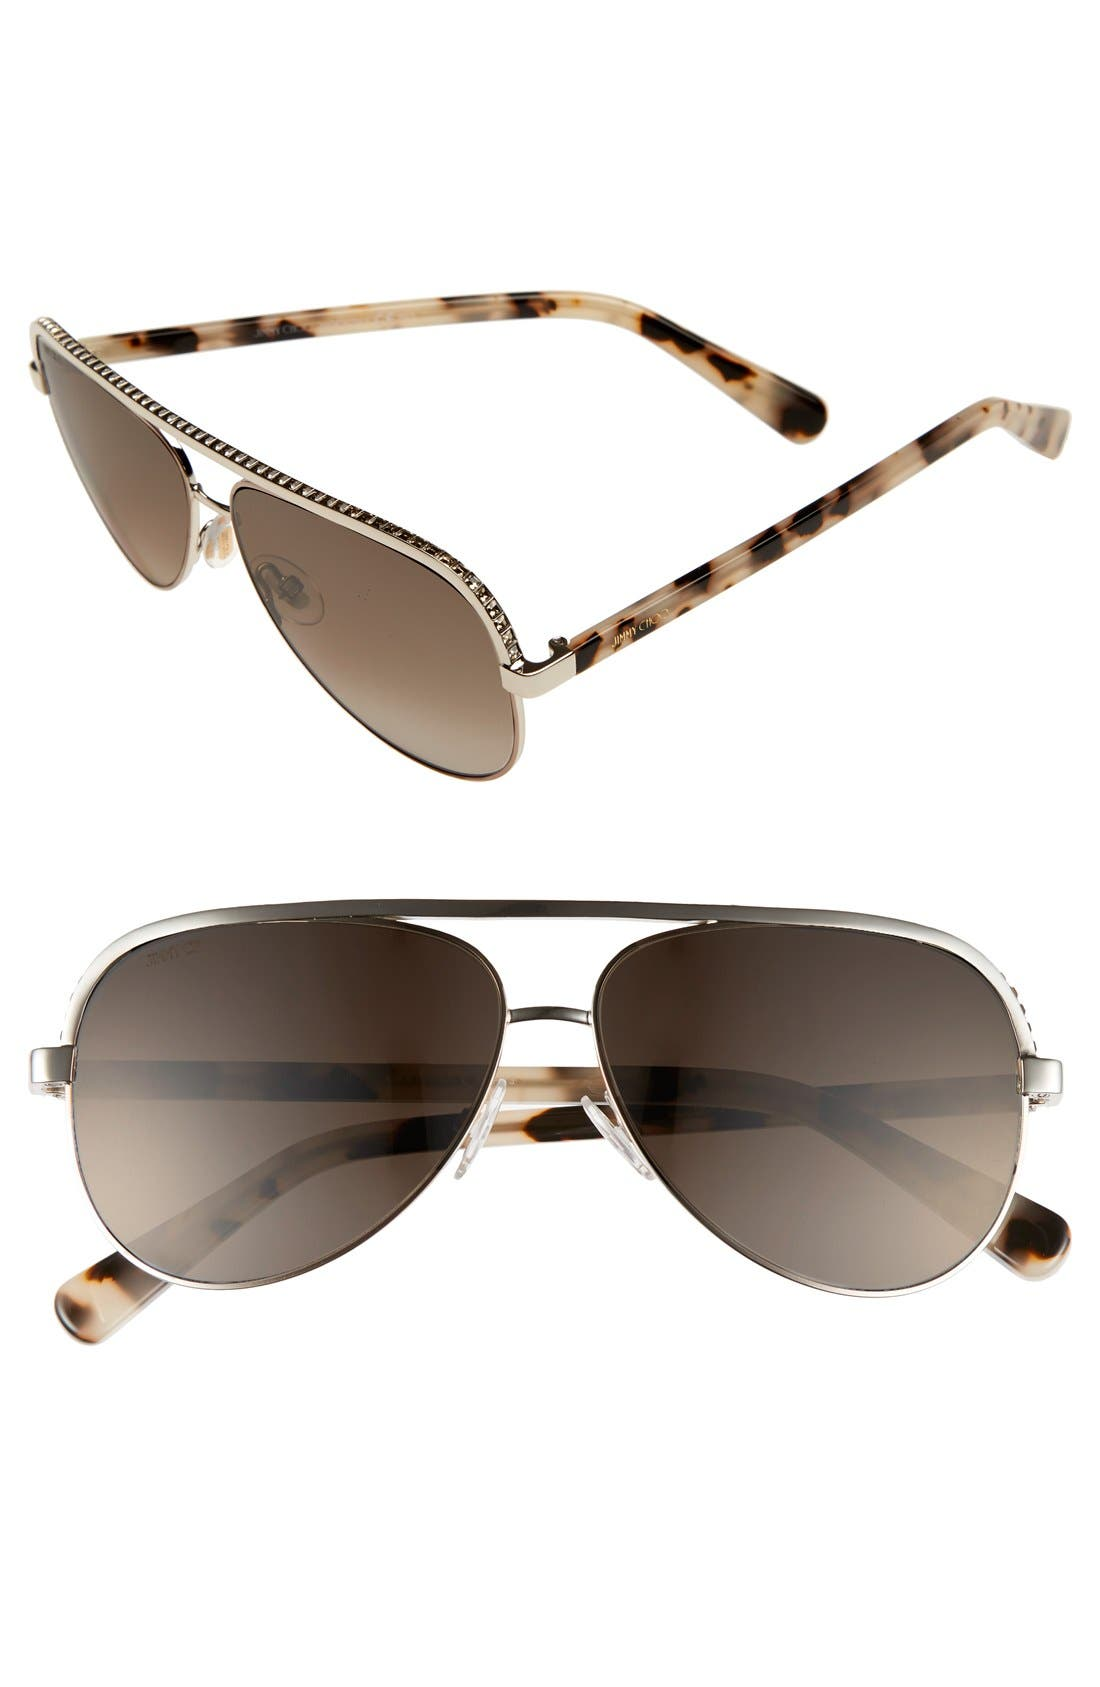 Alternate Image 1 Selected - Jimmy Choo 'Linas' 59mm Aviator Sunglasses